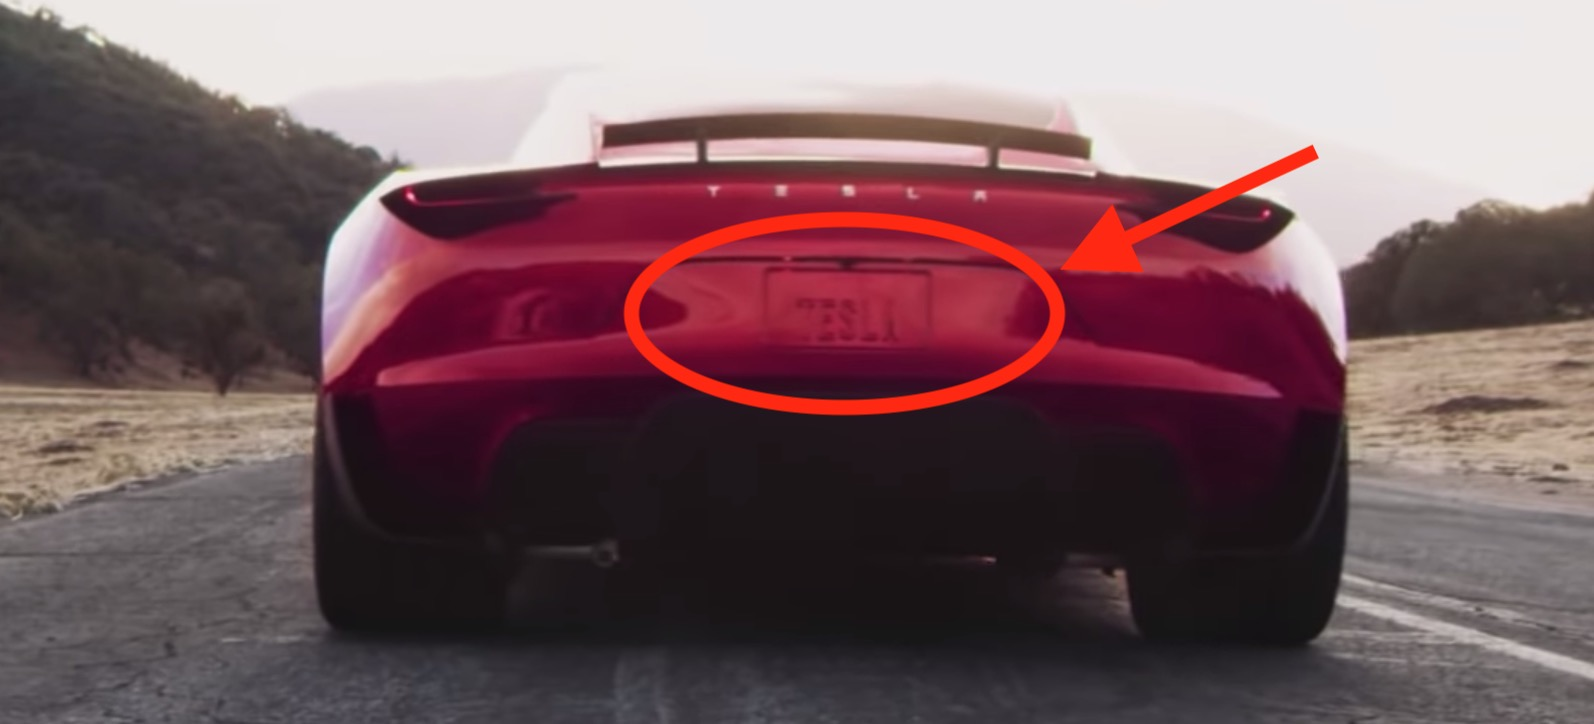 Tesla Roadster's SpaceX thruster will be hidden behind the ...